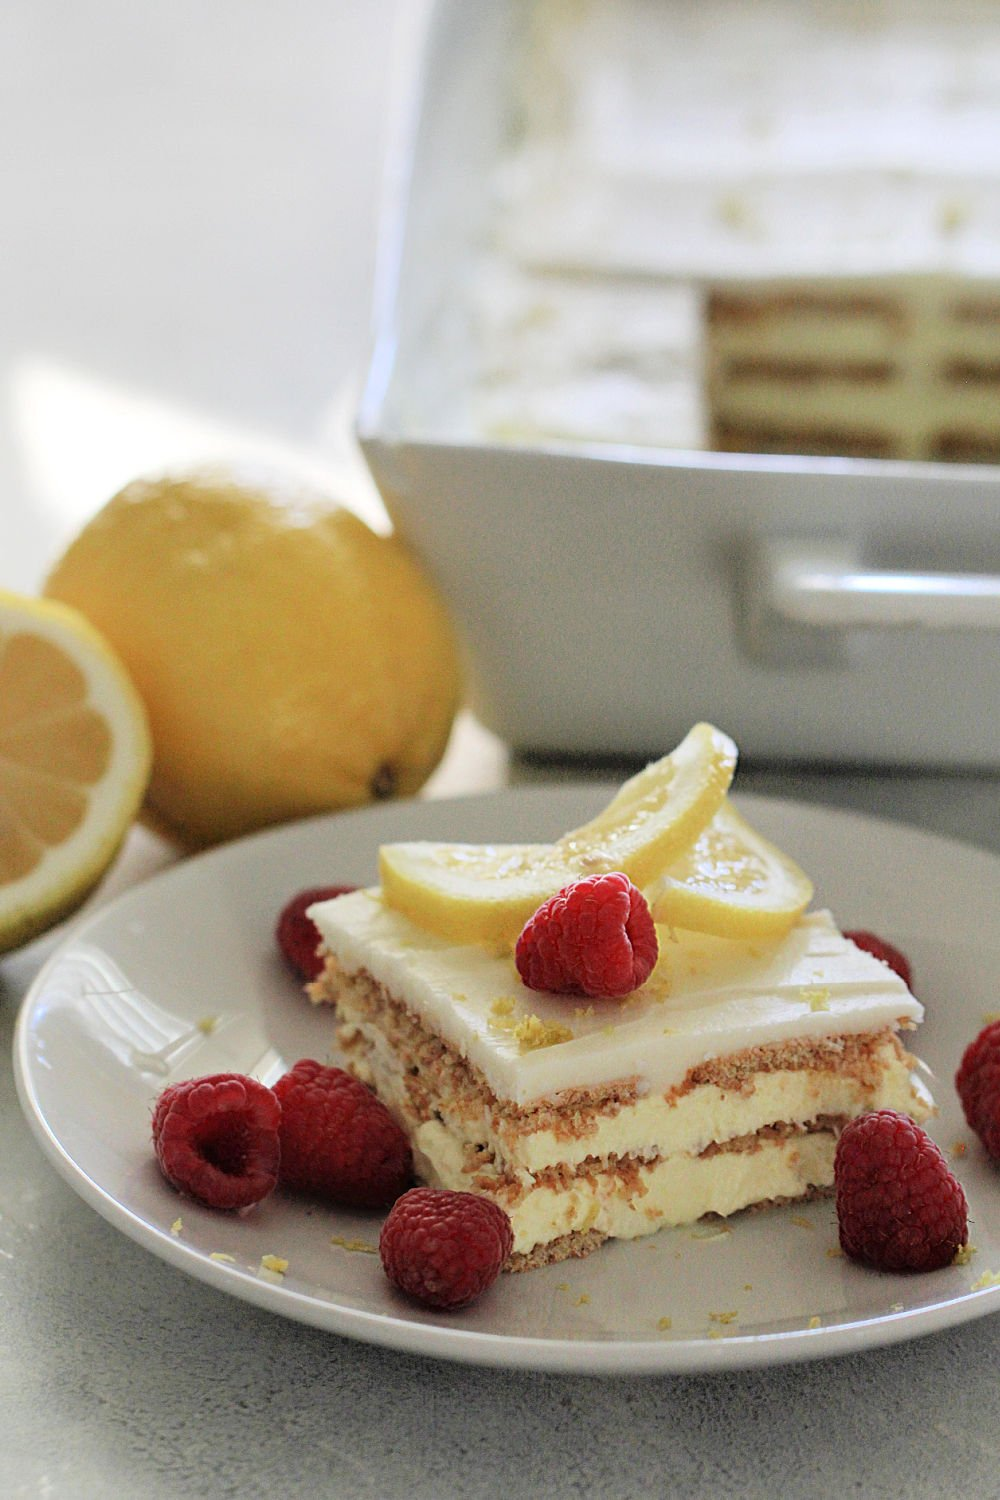 No Bake Lemon Ice Box Cake Recipe (Eclair Cake) on a white plate topped with lemon slices and raspberries